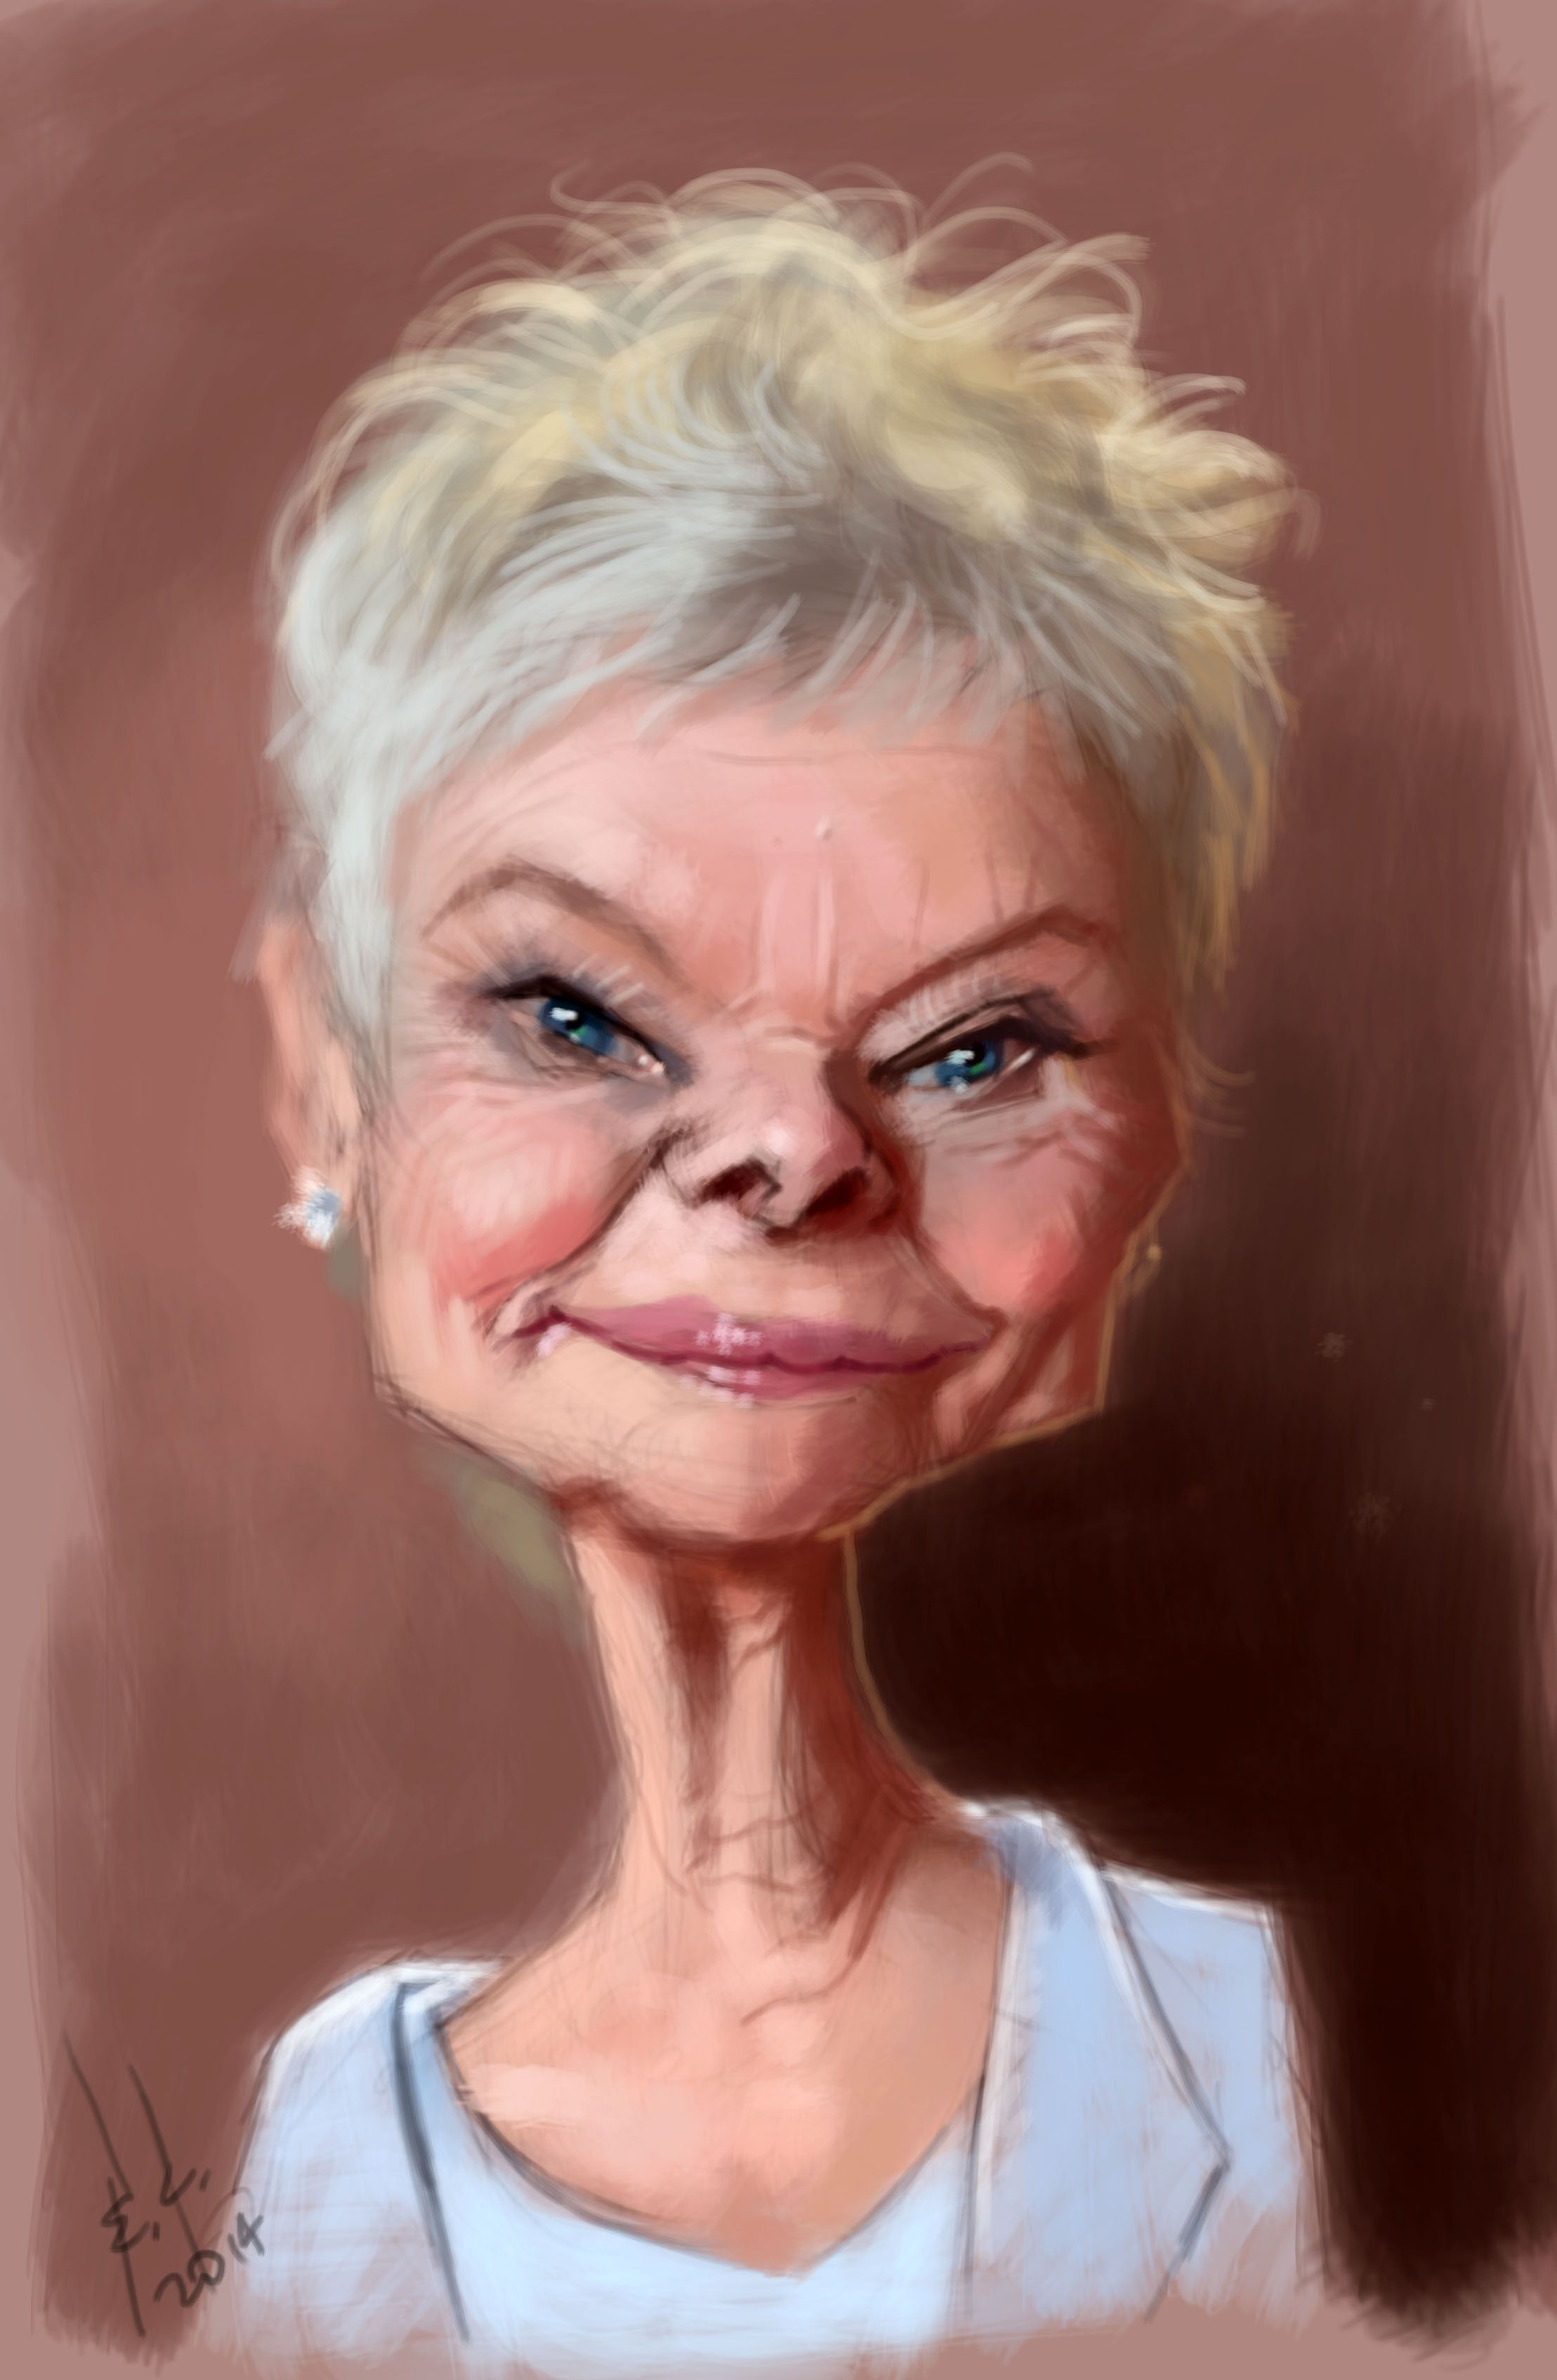 Judi Dench Photoshop And Wacom Tablet My Caricatures - Photoshop master combines two celebrities together to create one famous face